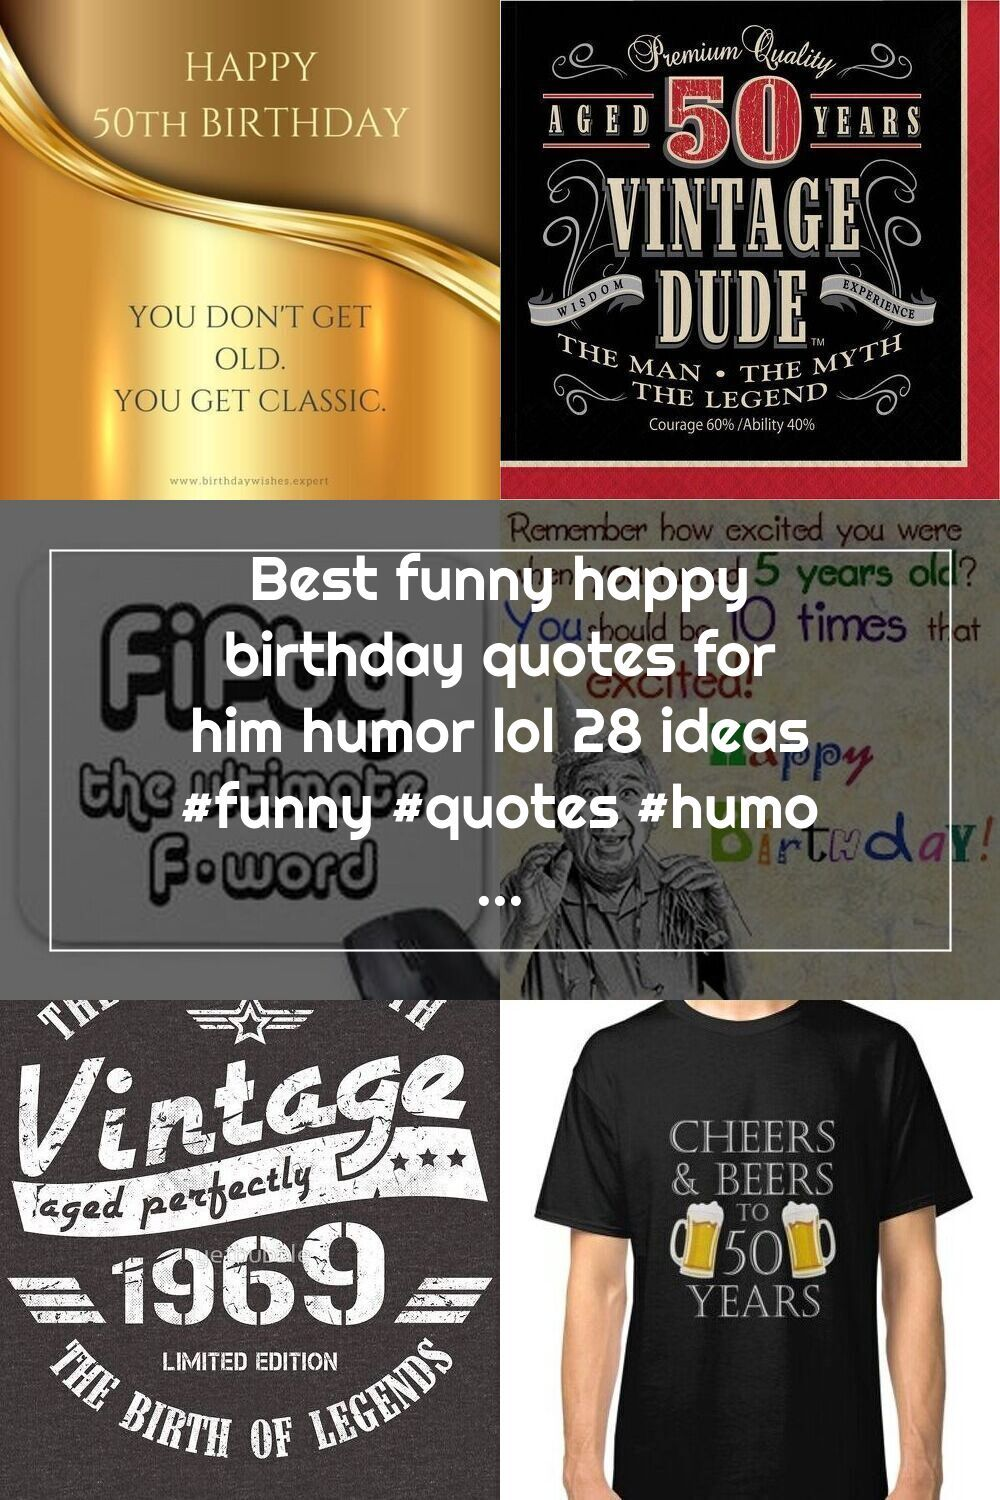 Best funny happy birthday quotes for him humor lol 28